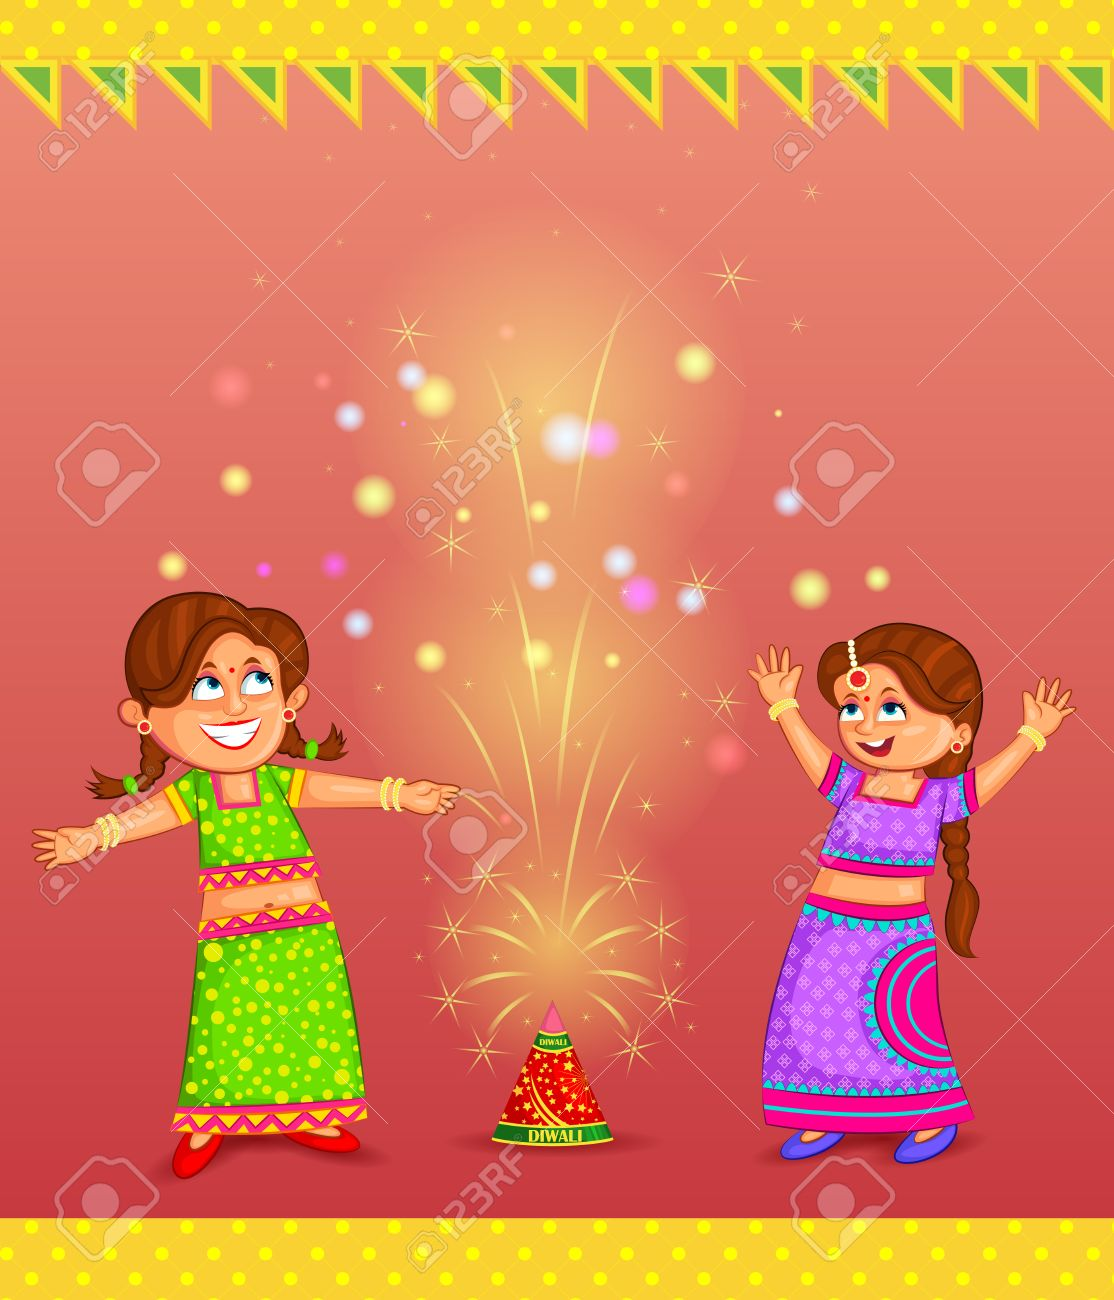 Kids enjoying firecracker celebrating Diwali | Clipart Station for Deepavali Celebration Clipart  570bof